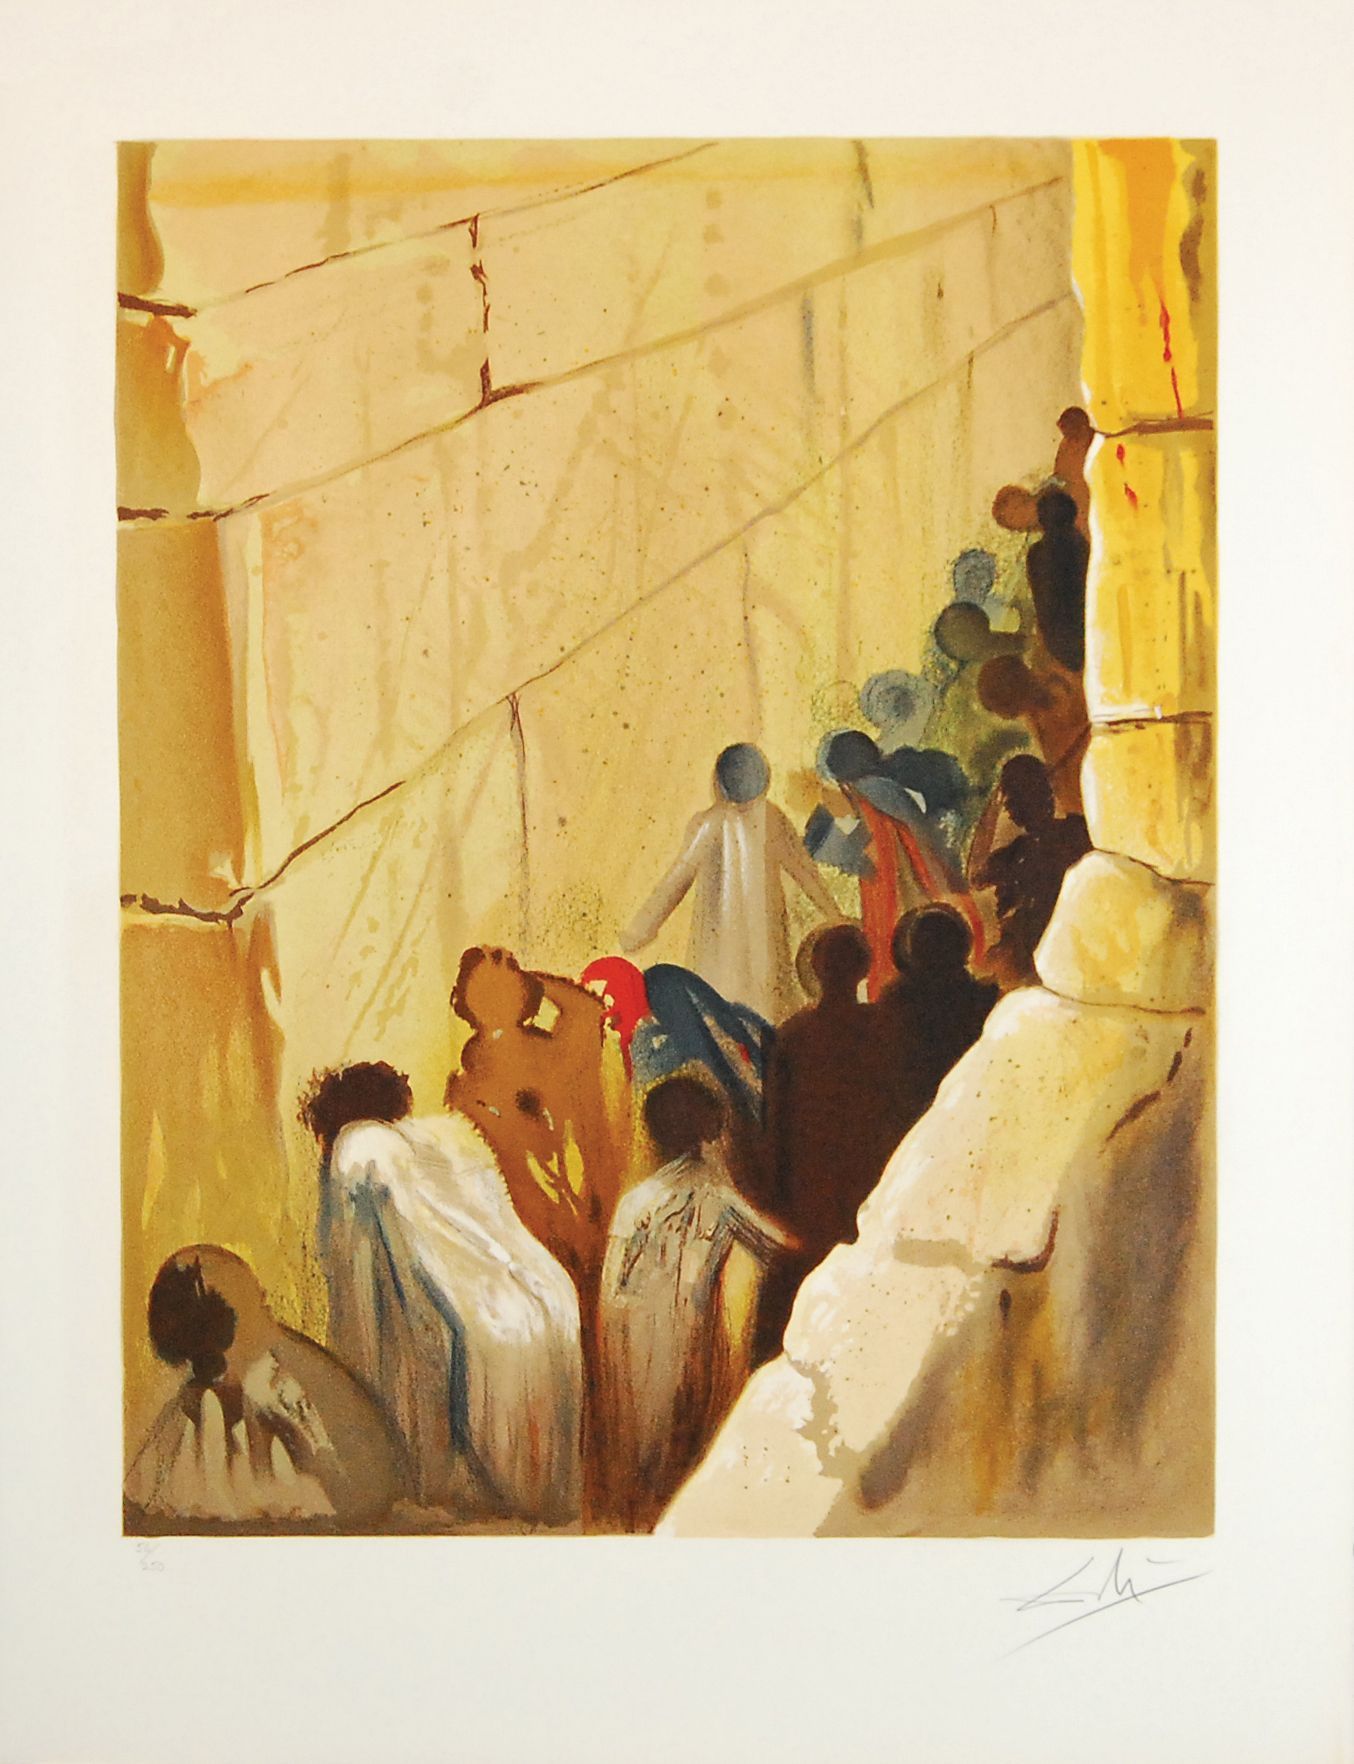 The Wailing Wall by Salvador Dali | Top 4 Masters of the 20th ...